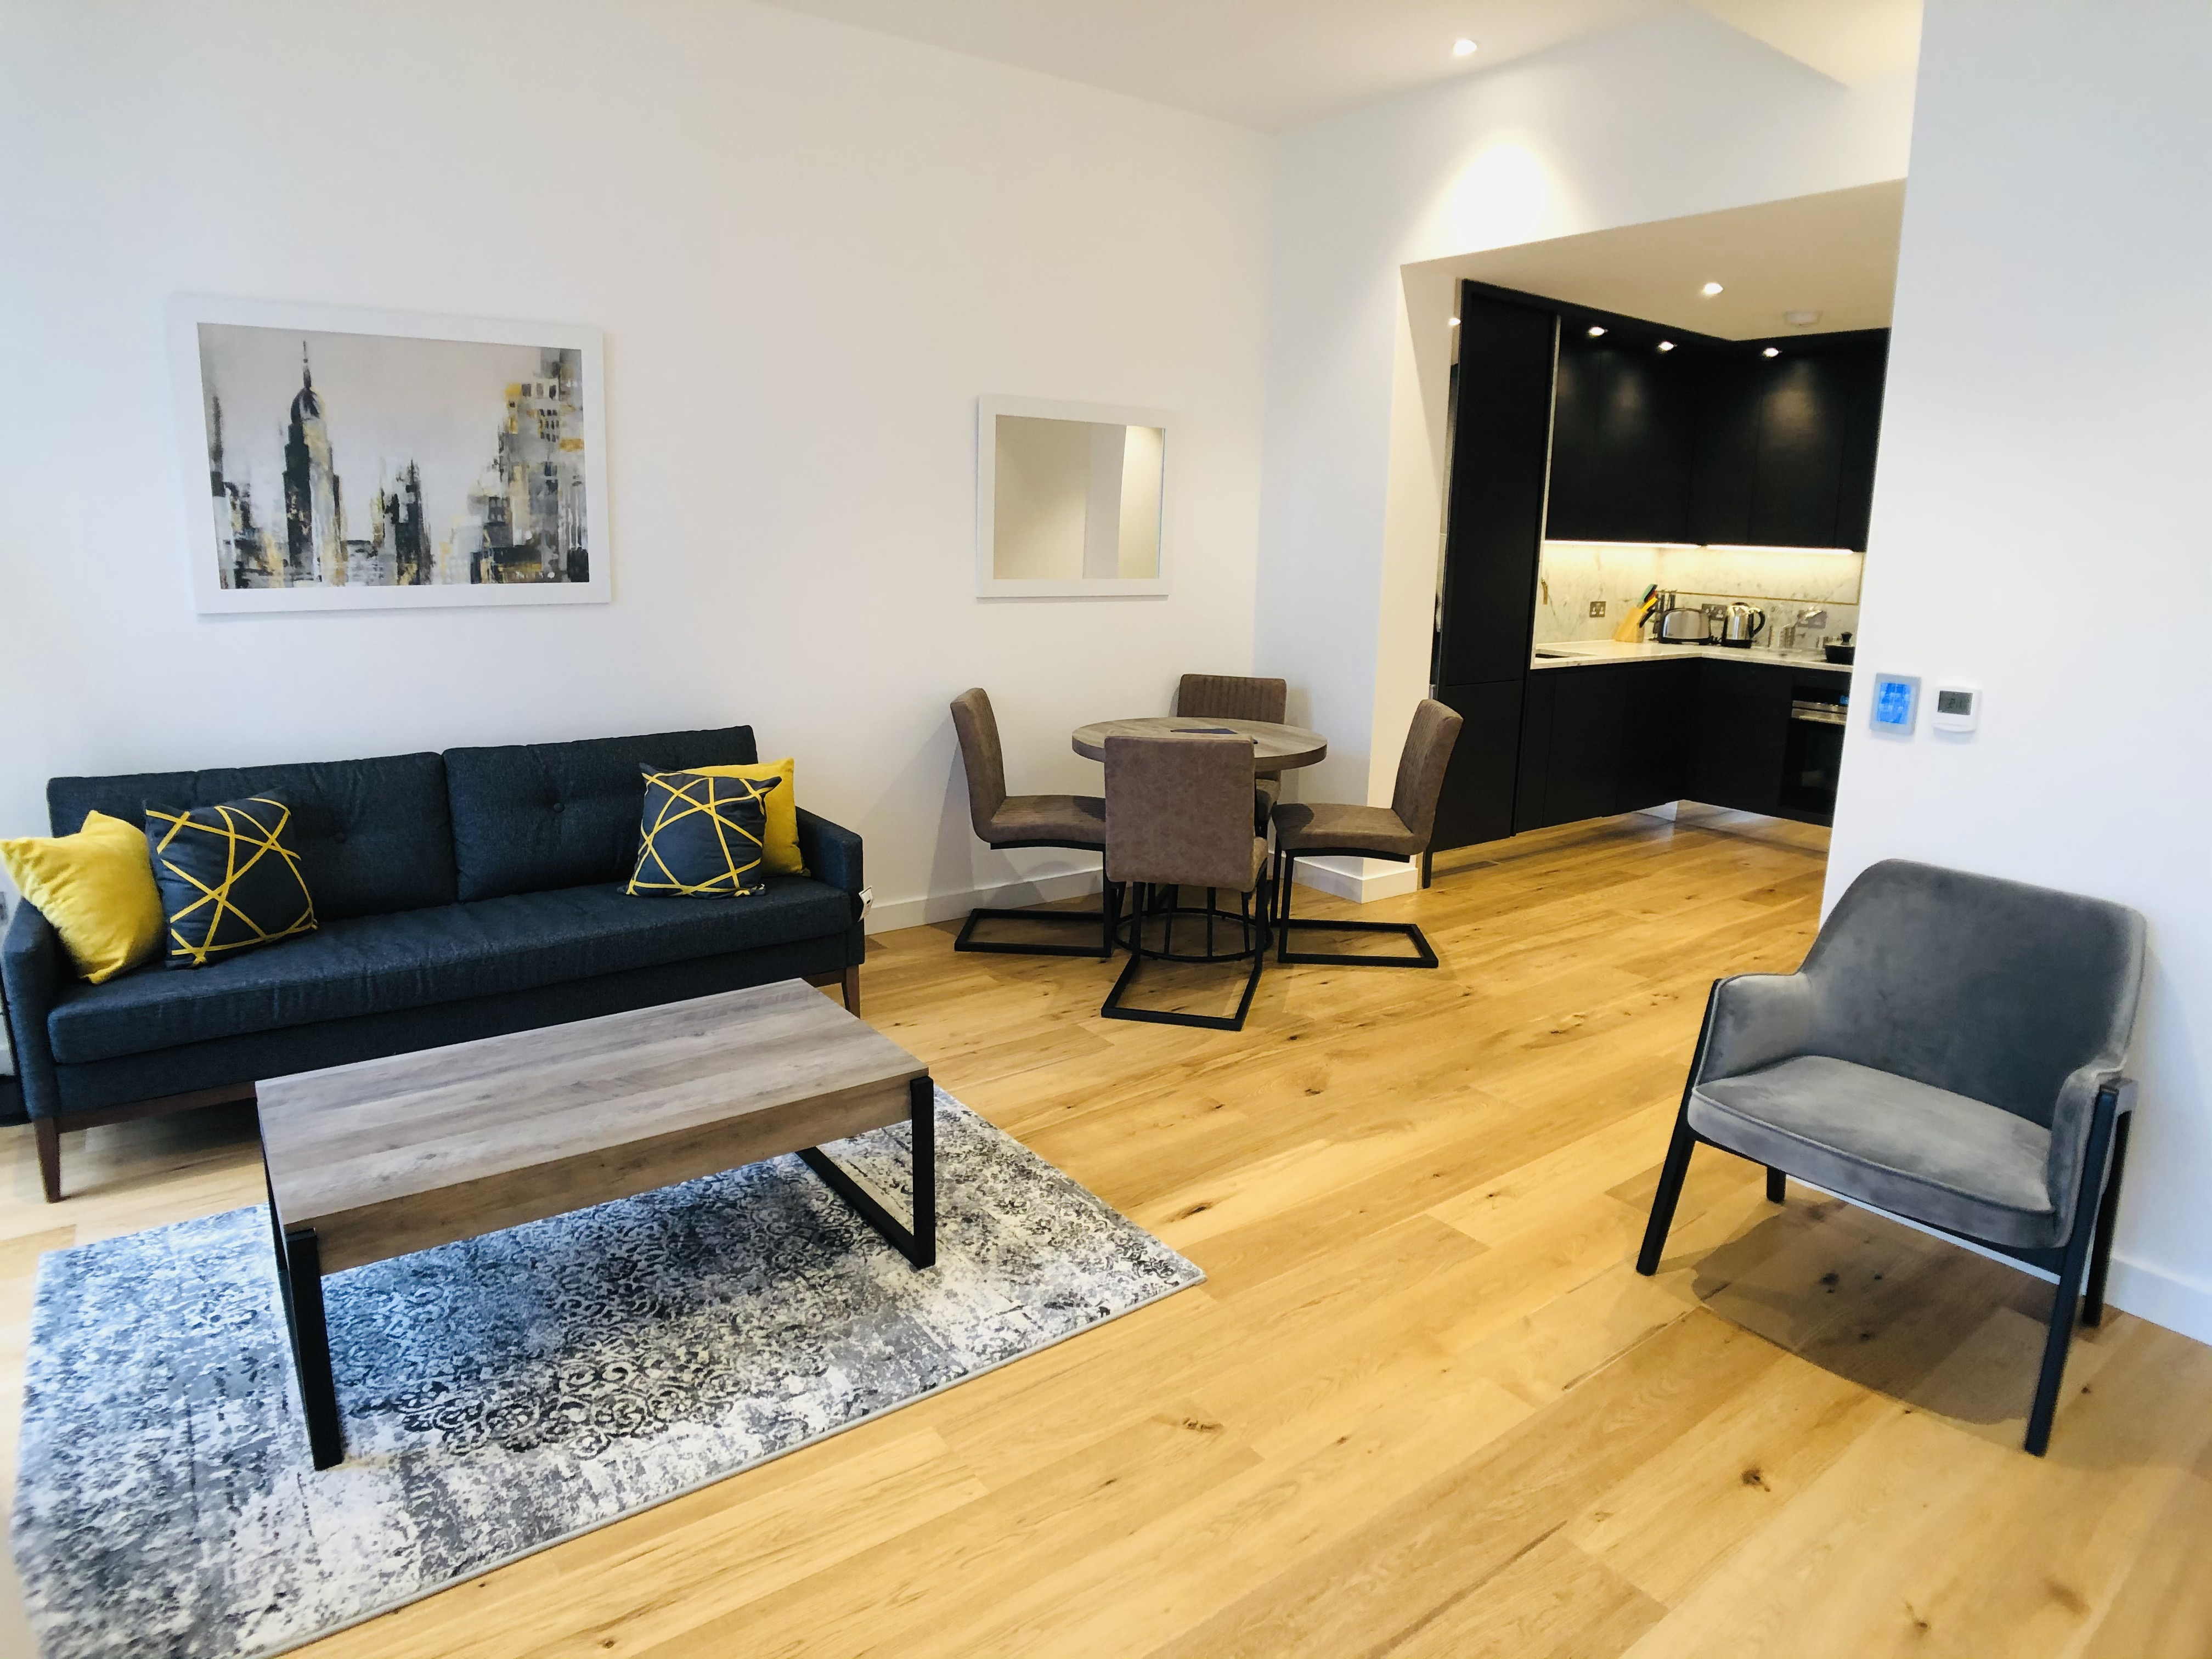 Apt 220 Esther Anne Place, N1 (1 bedroom to rent)